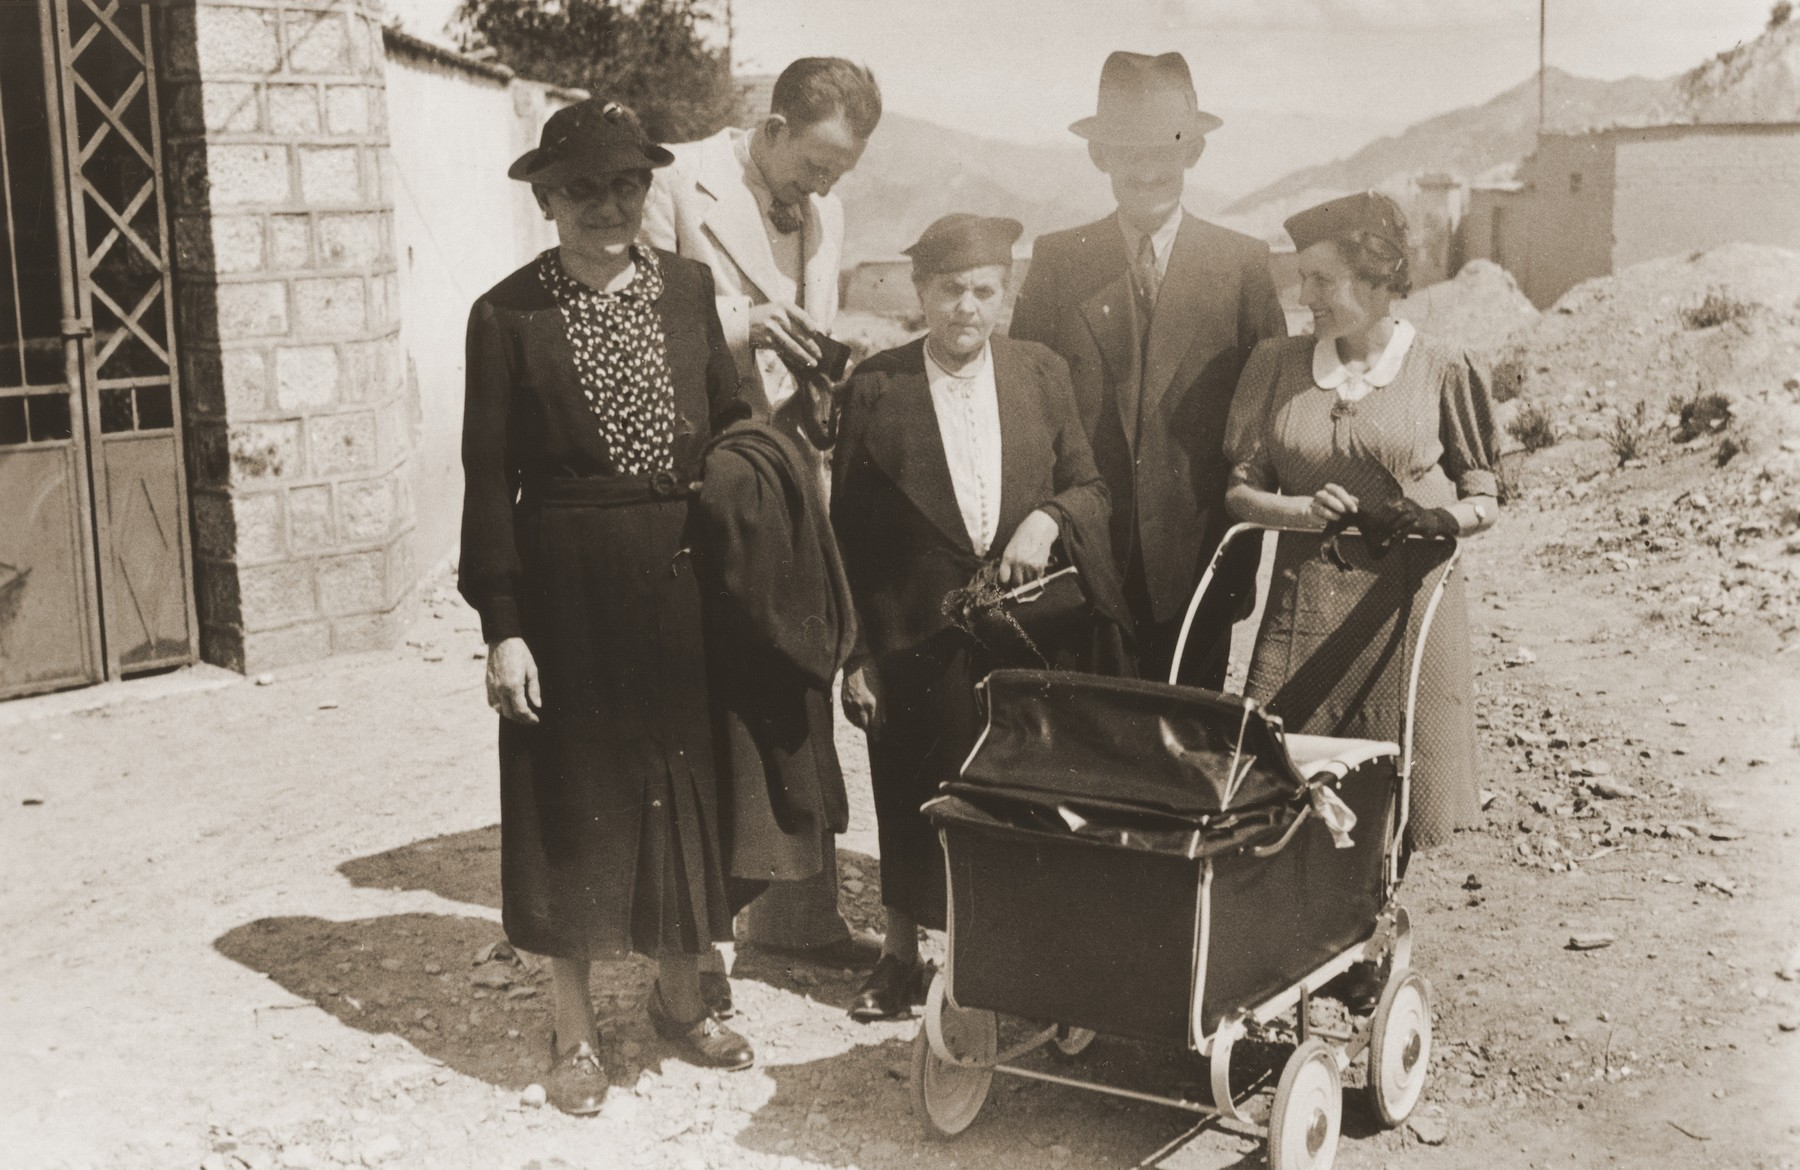 The Wolfinger and Spitzer families outside their home in La Paz, Bolivia.    Pictured from left to right are:  Carolina Spitzer; Eugen Spitzer; Bertha and Nathan Wolfinger; Rosie Spitzer; and Leo Spitzer in the carriage.